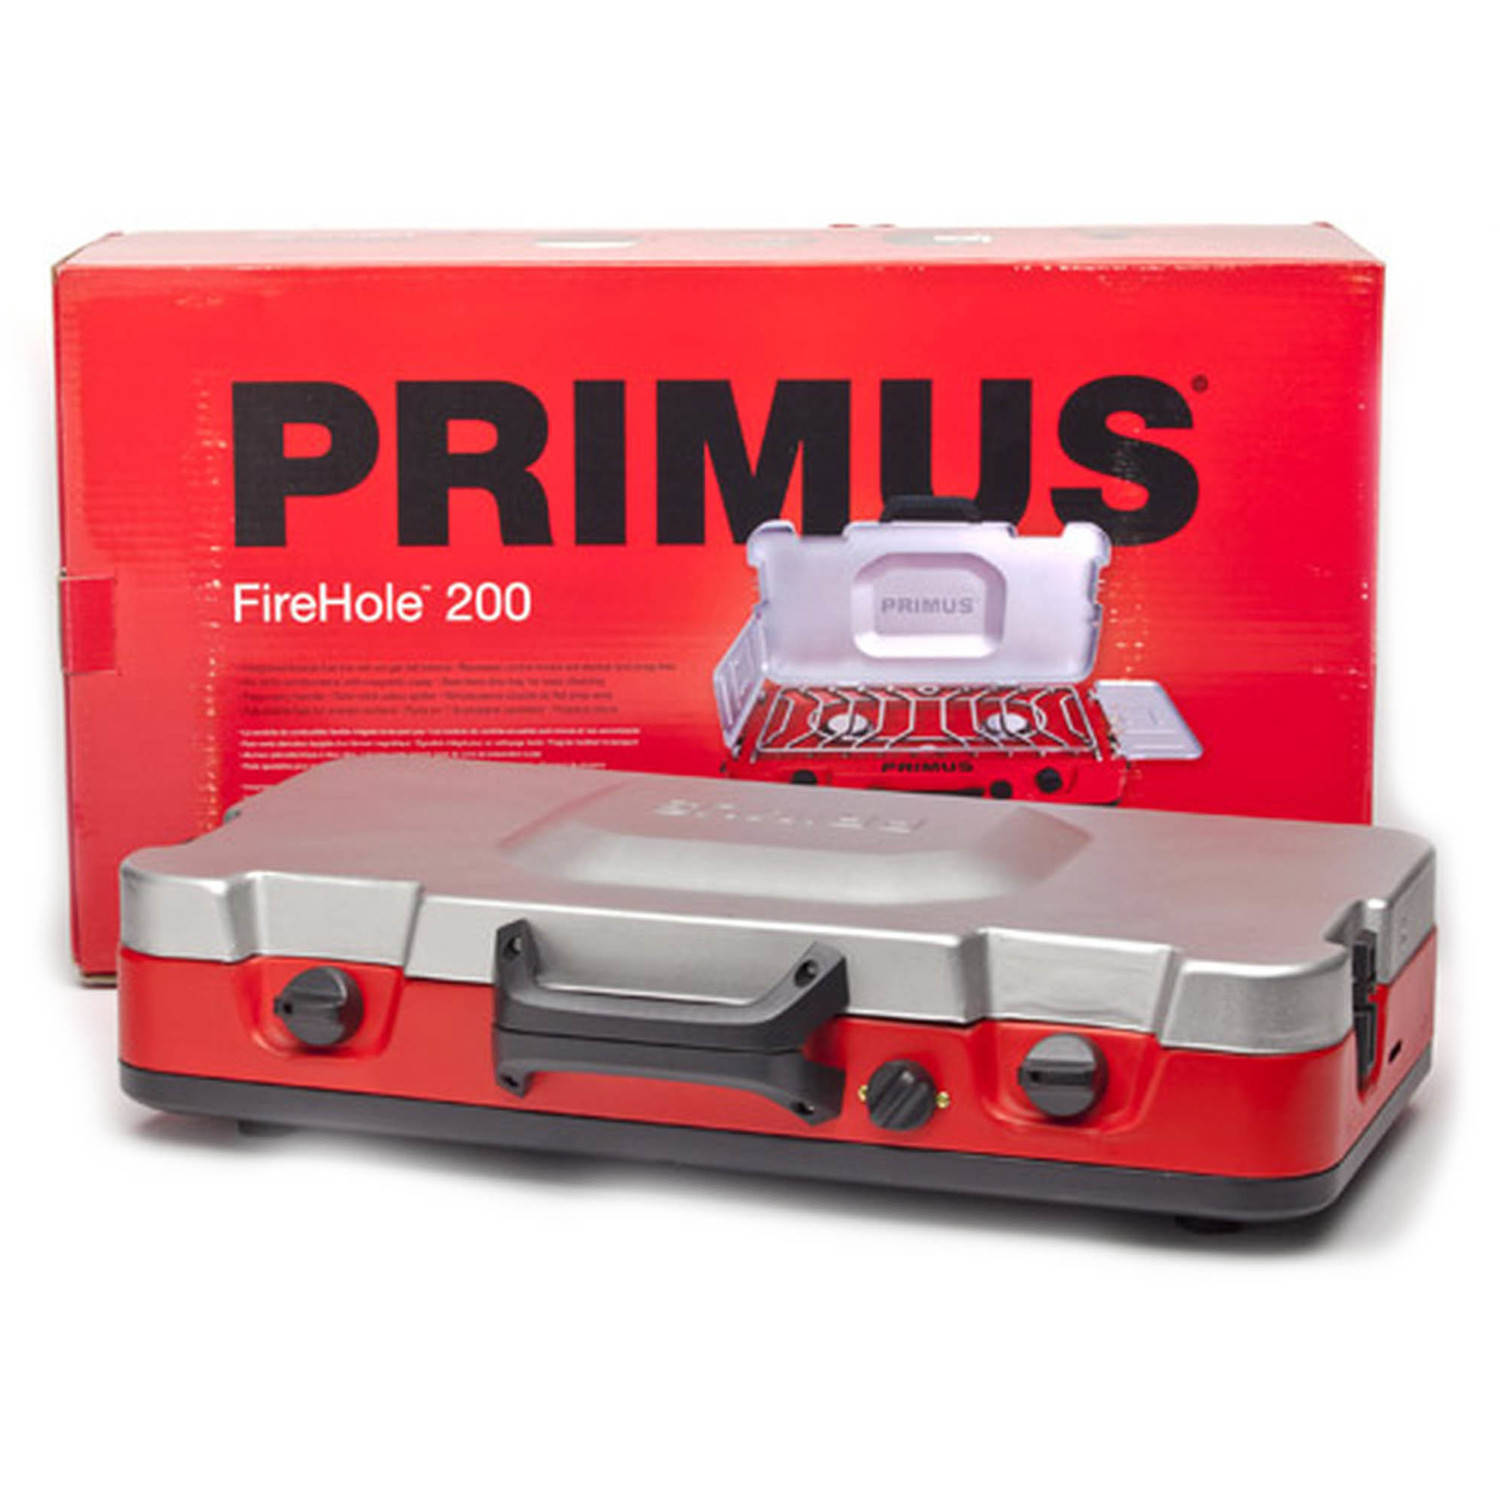 Primus Firehole 200 Propane Camp Stove with Universal Winds